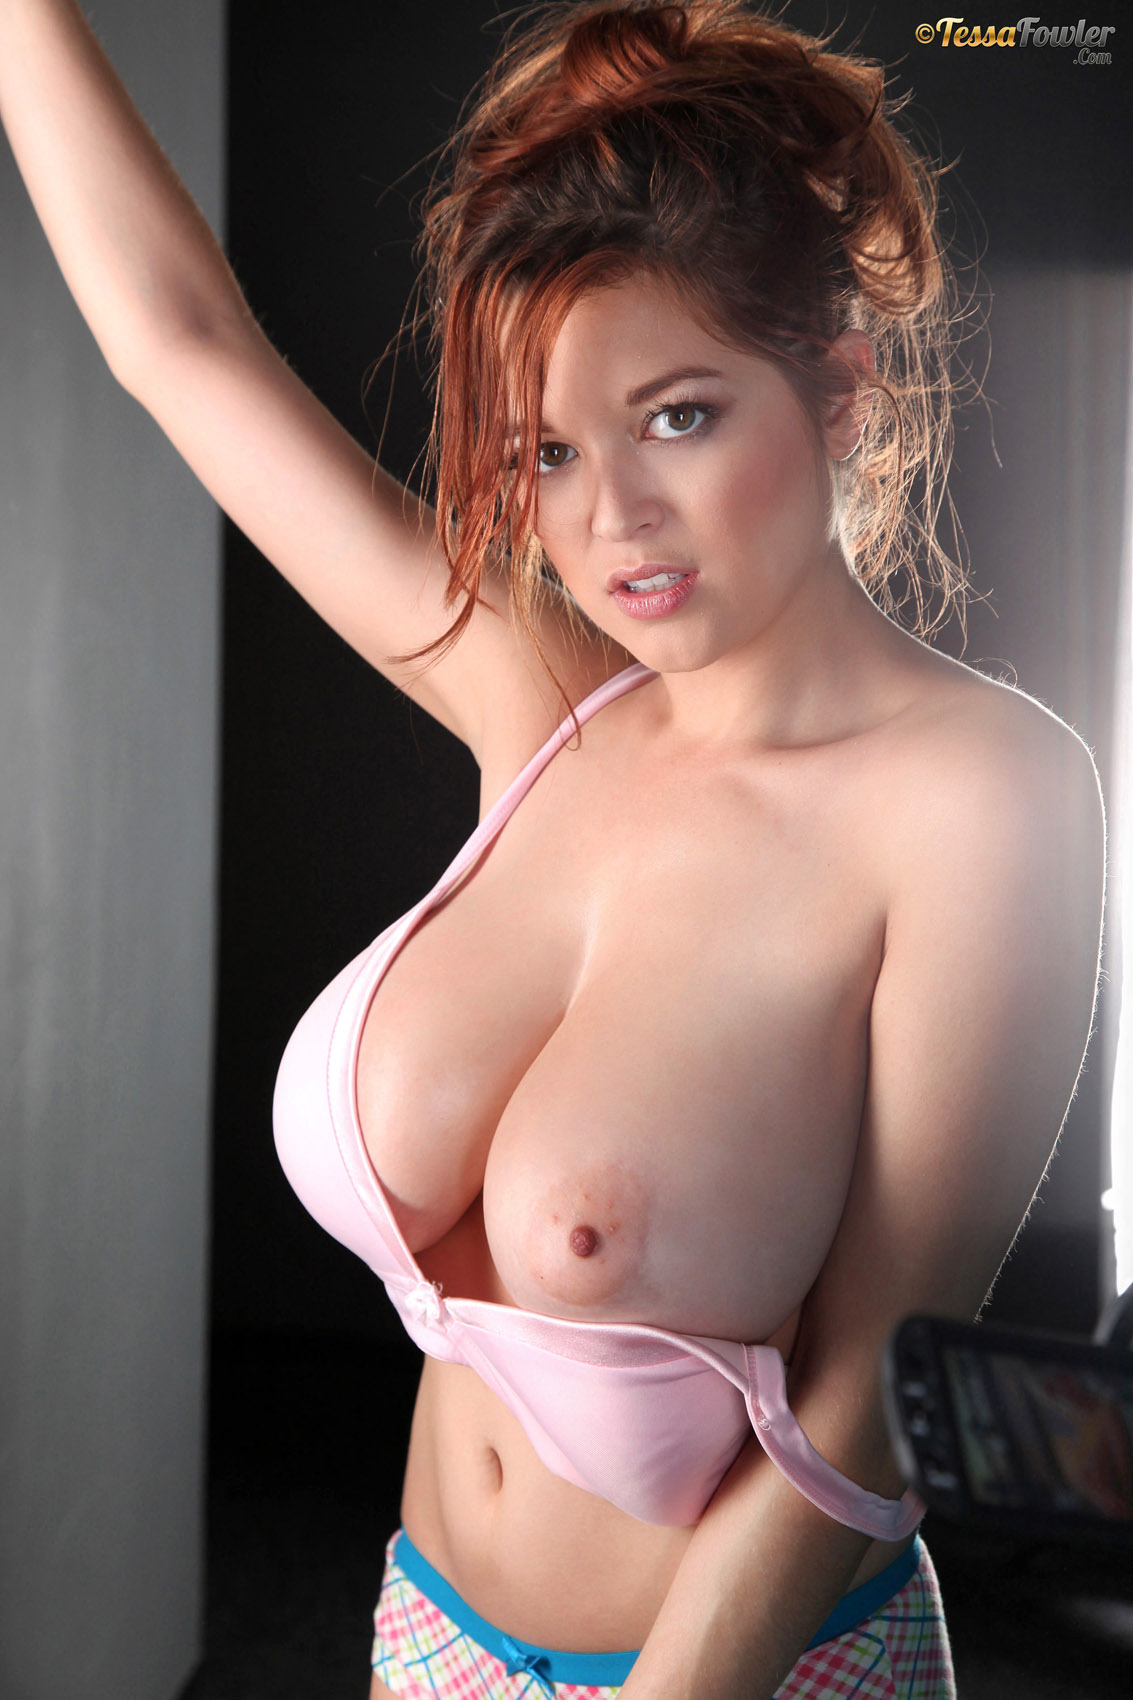 Claire dames thick white girls - 1 part 4